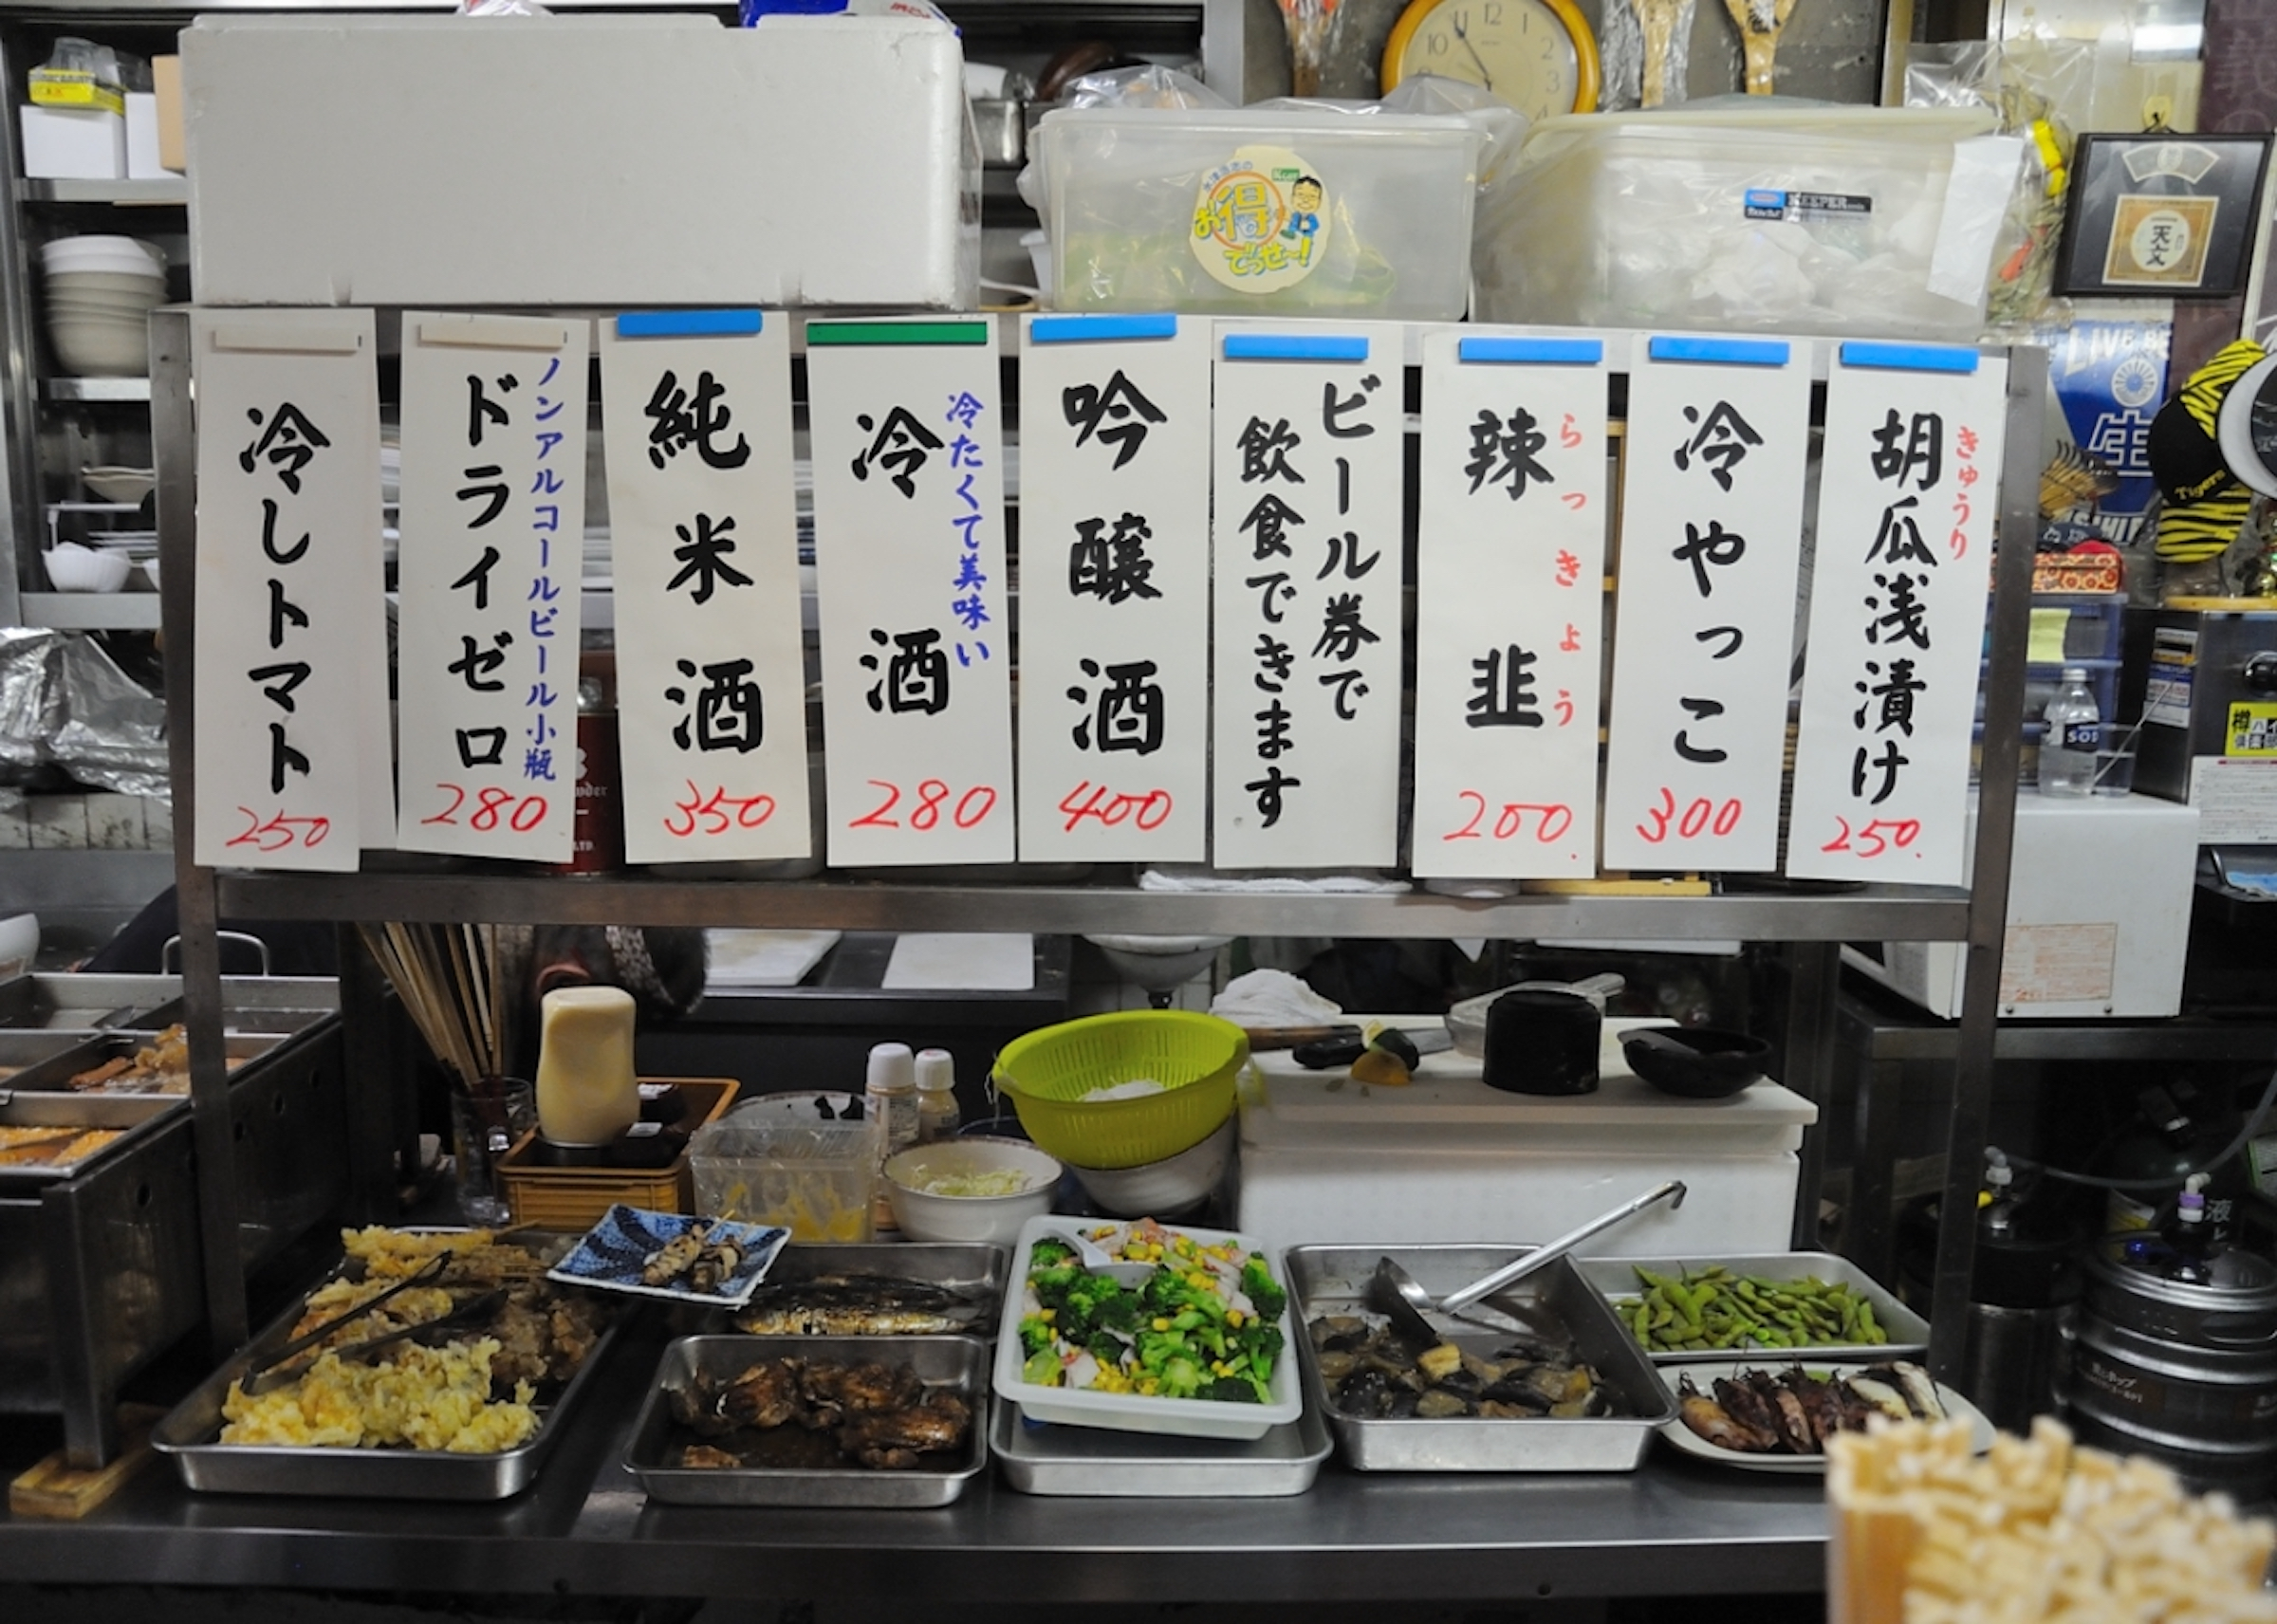 Photograph of menu above trays of food